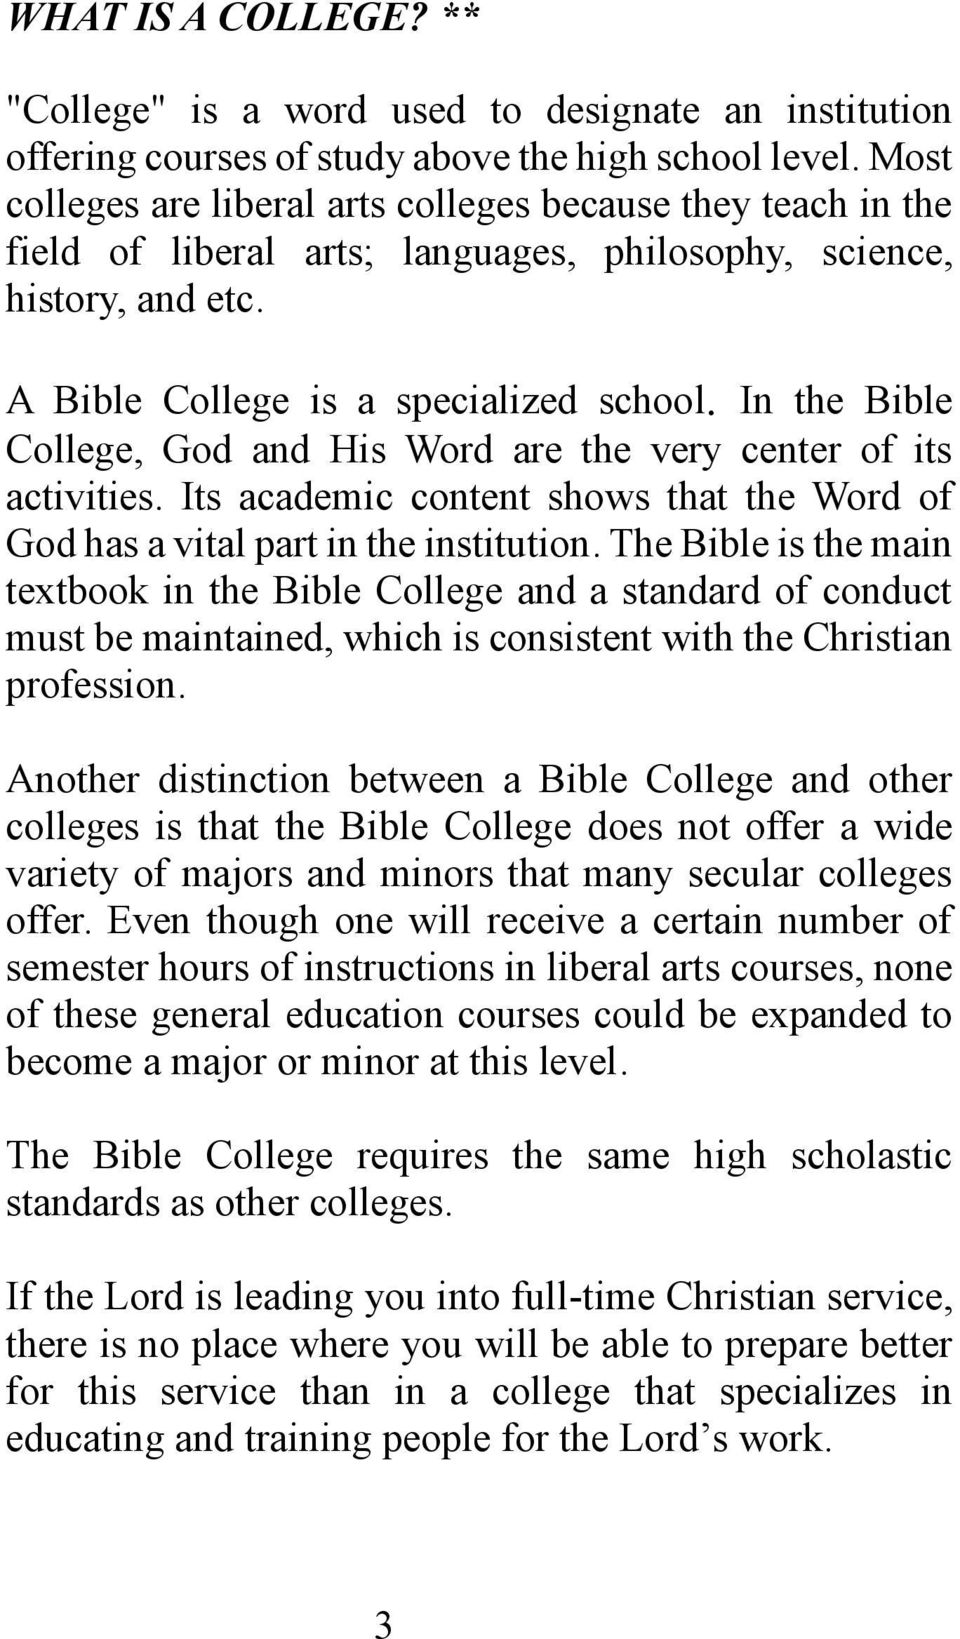 In the Bible College, God and His Word are the very center of its activities. Its academic content shows that the Word of God has a vital part in the institution.